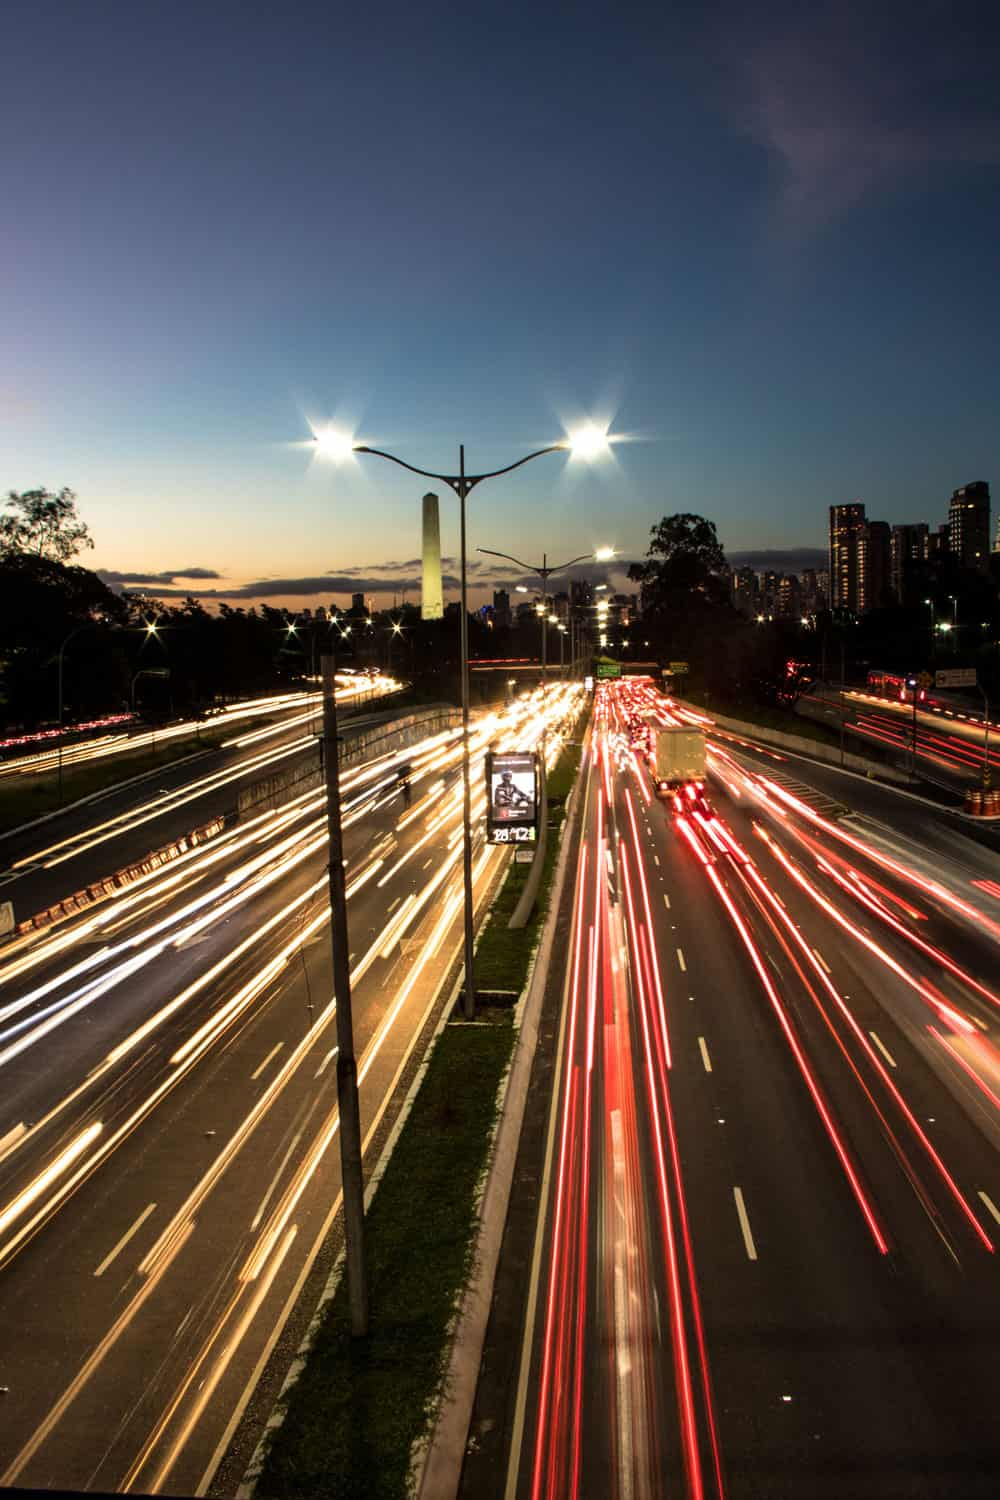 Photography Tips for Capturing Light Trails